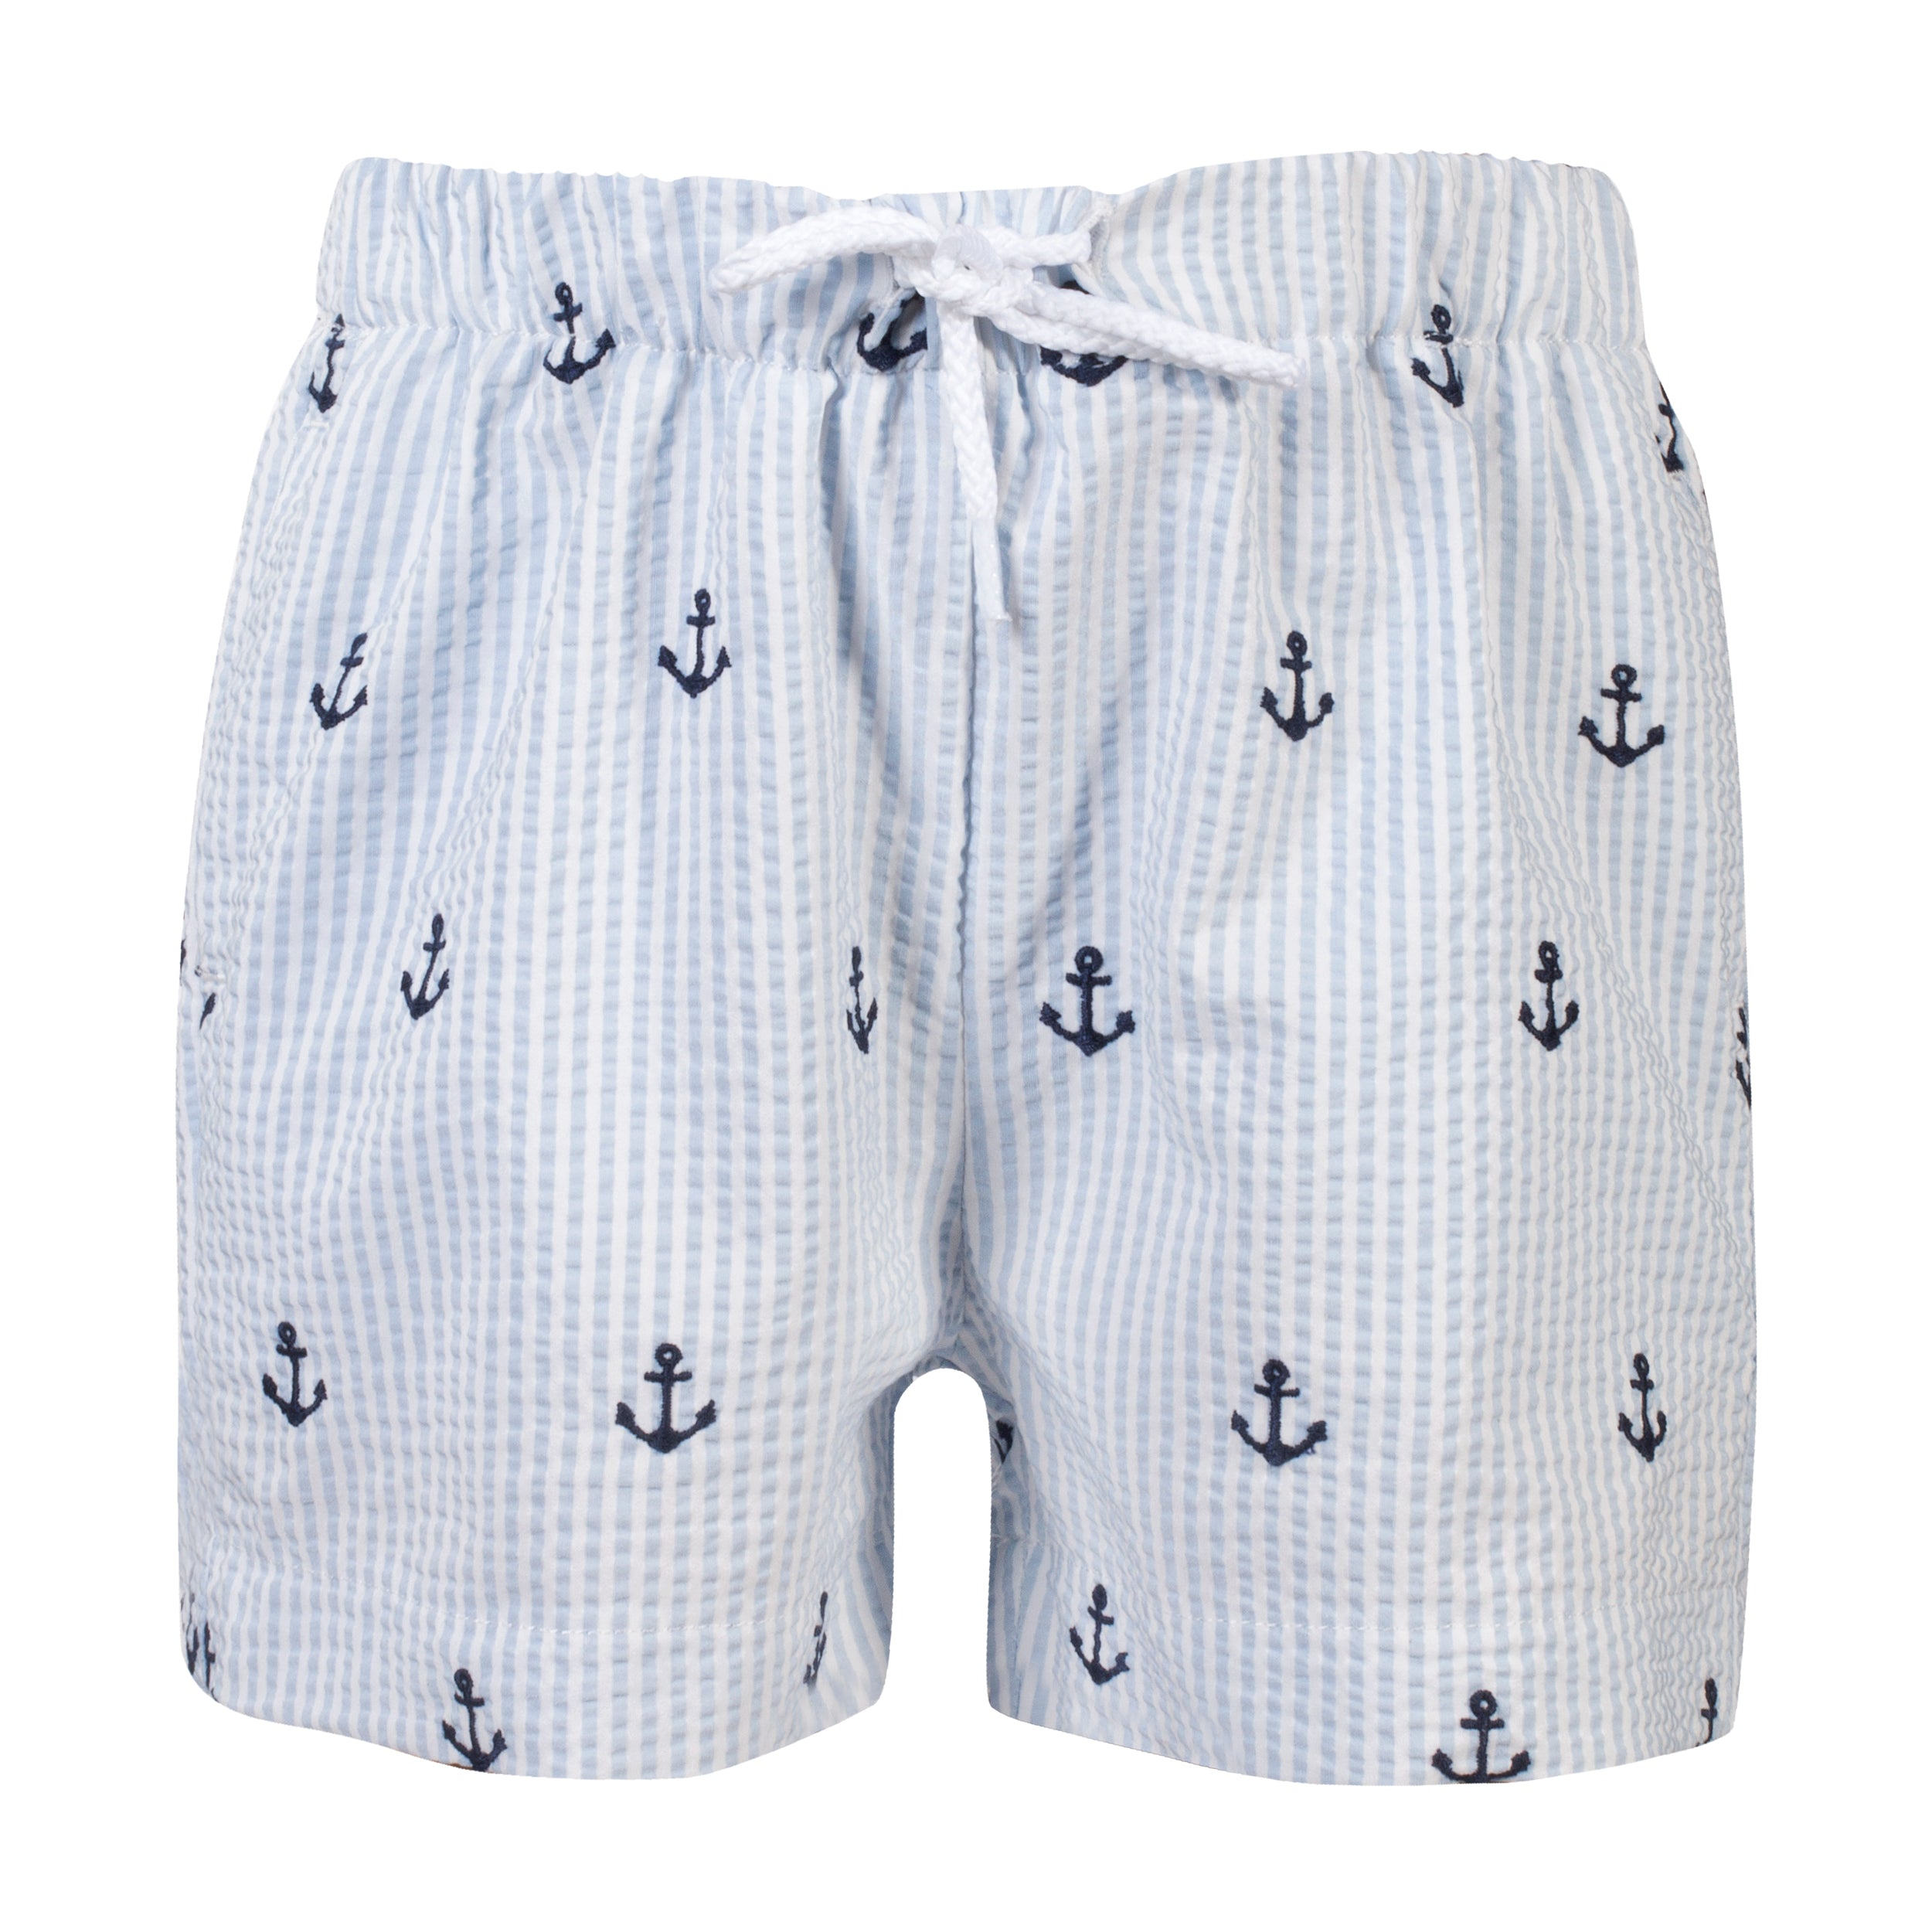 3d3a6e8520 SS19 Patachou Boys Blue & White Stripe Anchor Swim Shorts – Liquorice Kids